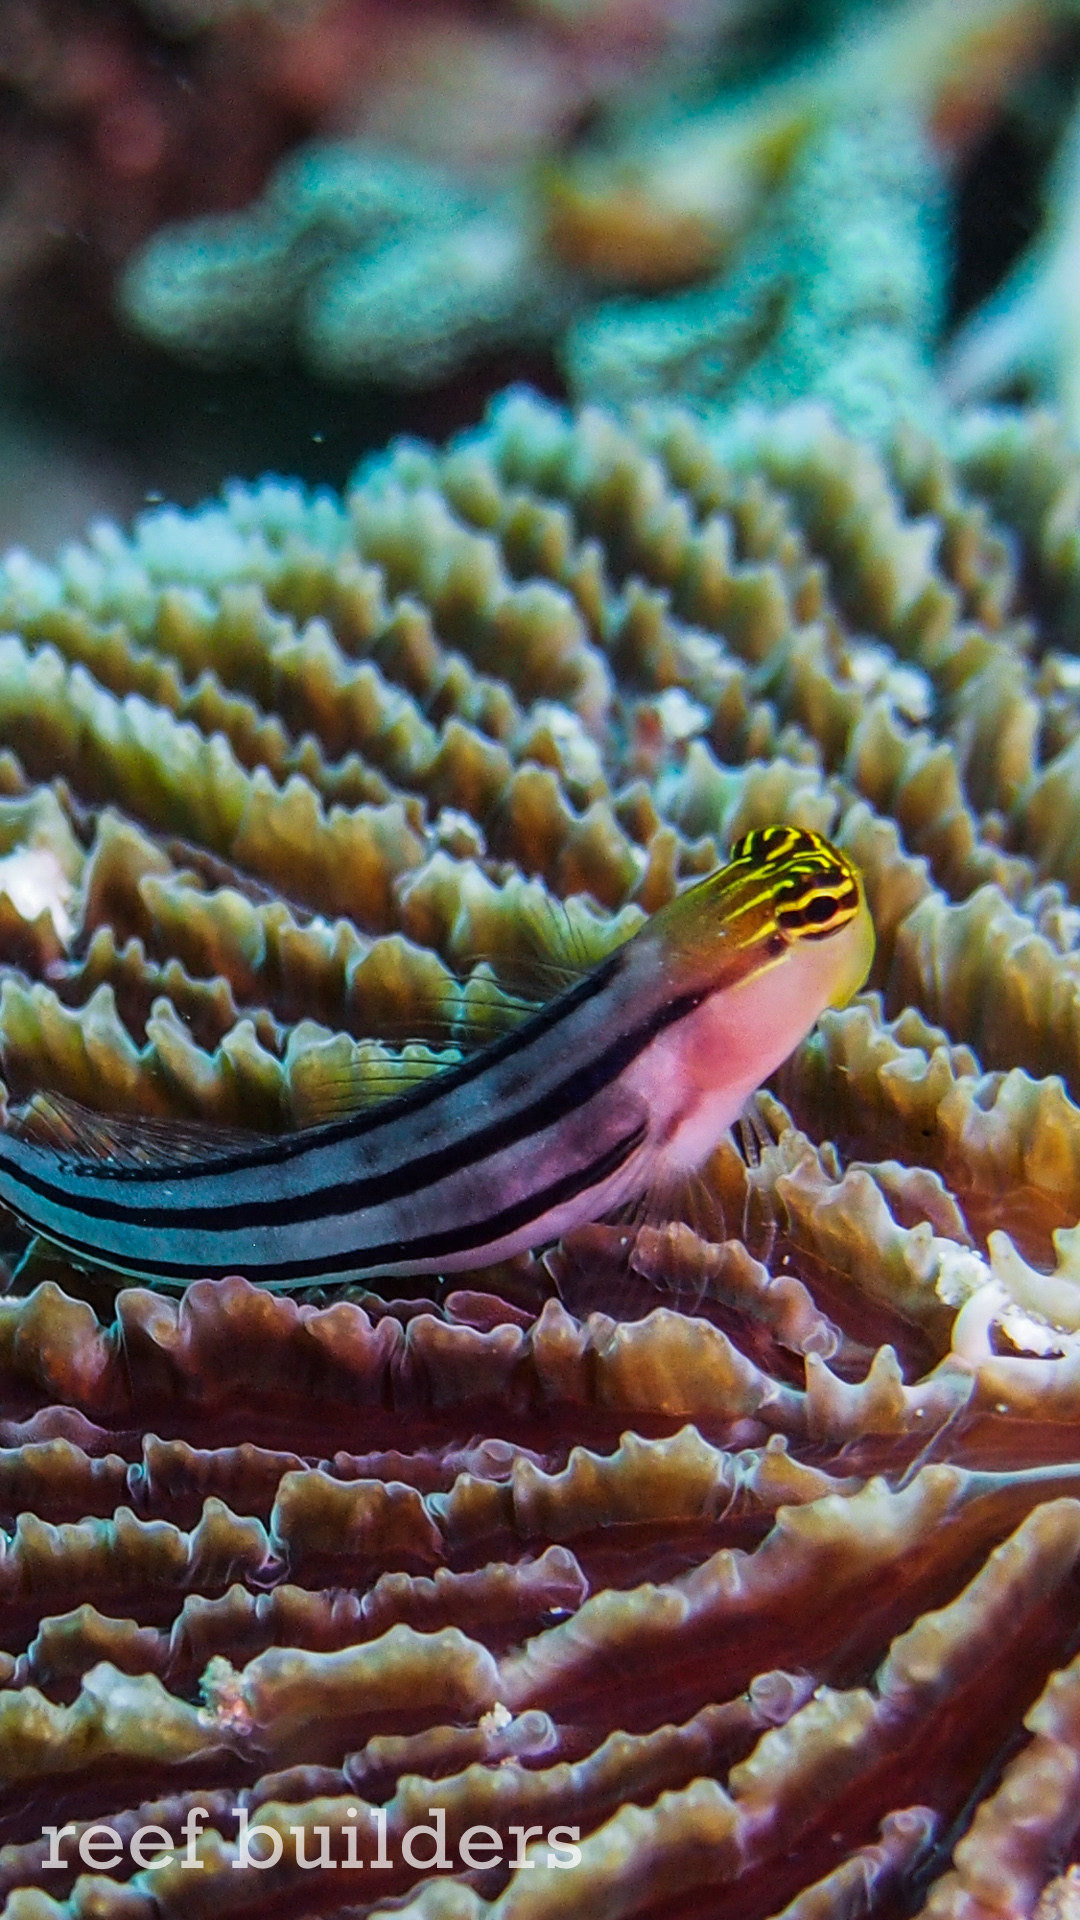 … iphone6-plus-coral-reef-fish-wallpaper-background-8 …